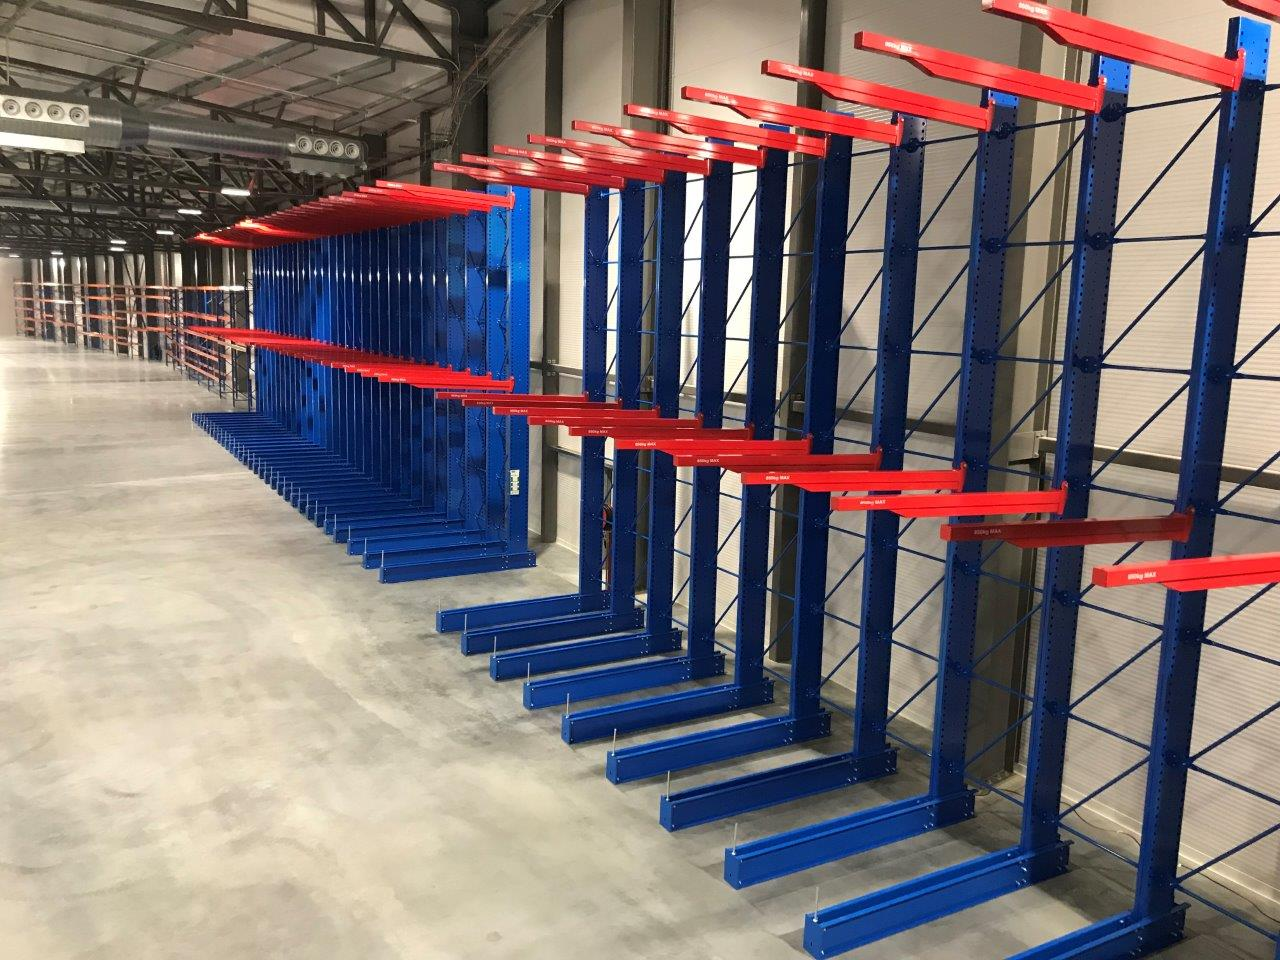 vertical goods shelf with blue and red